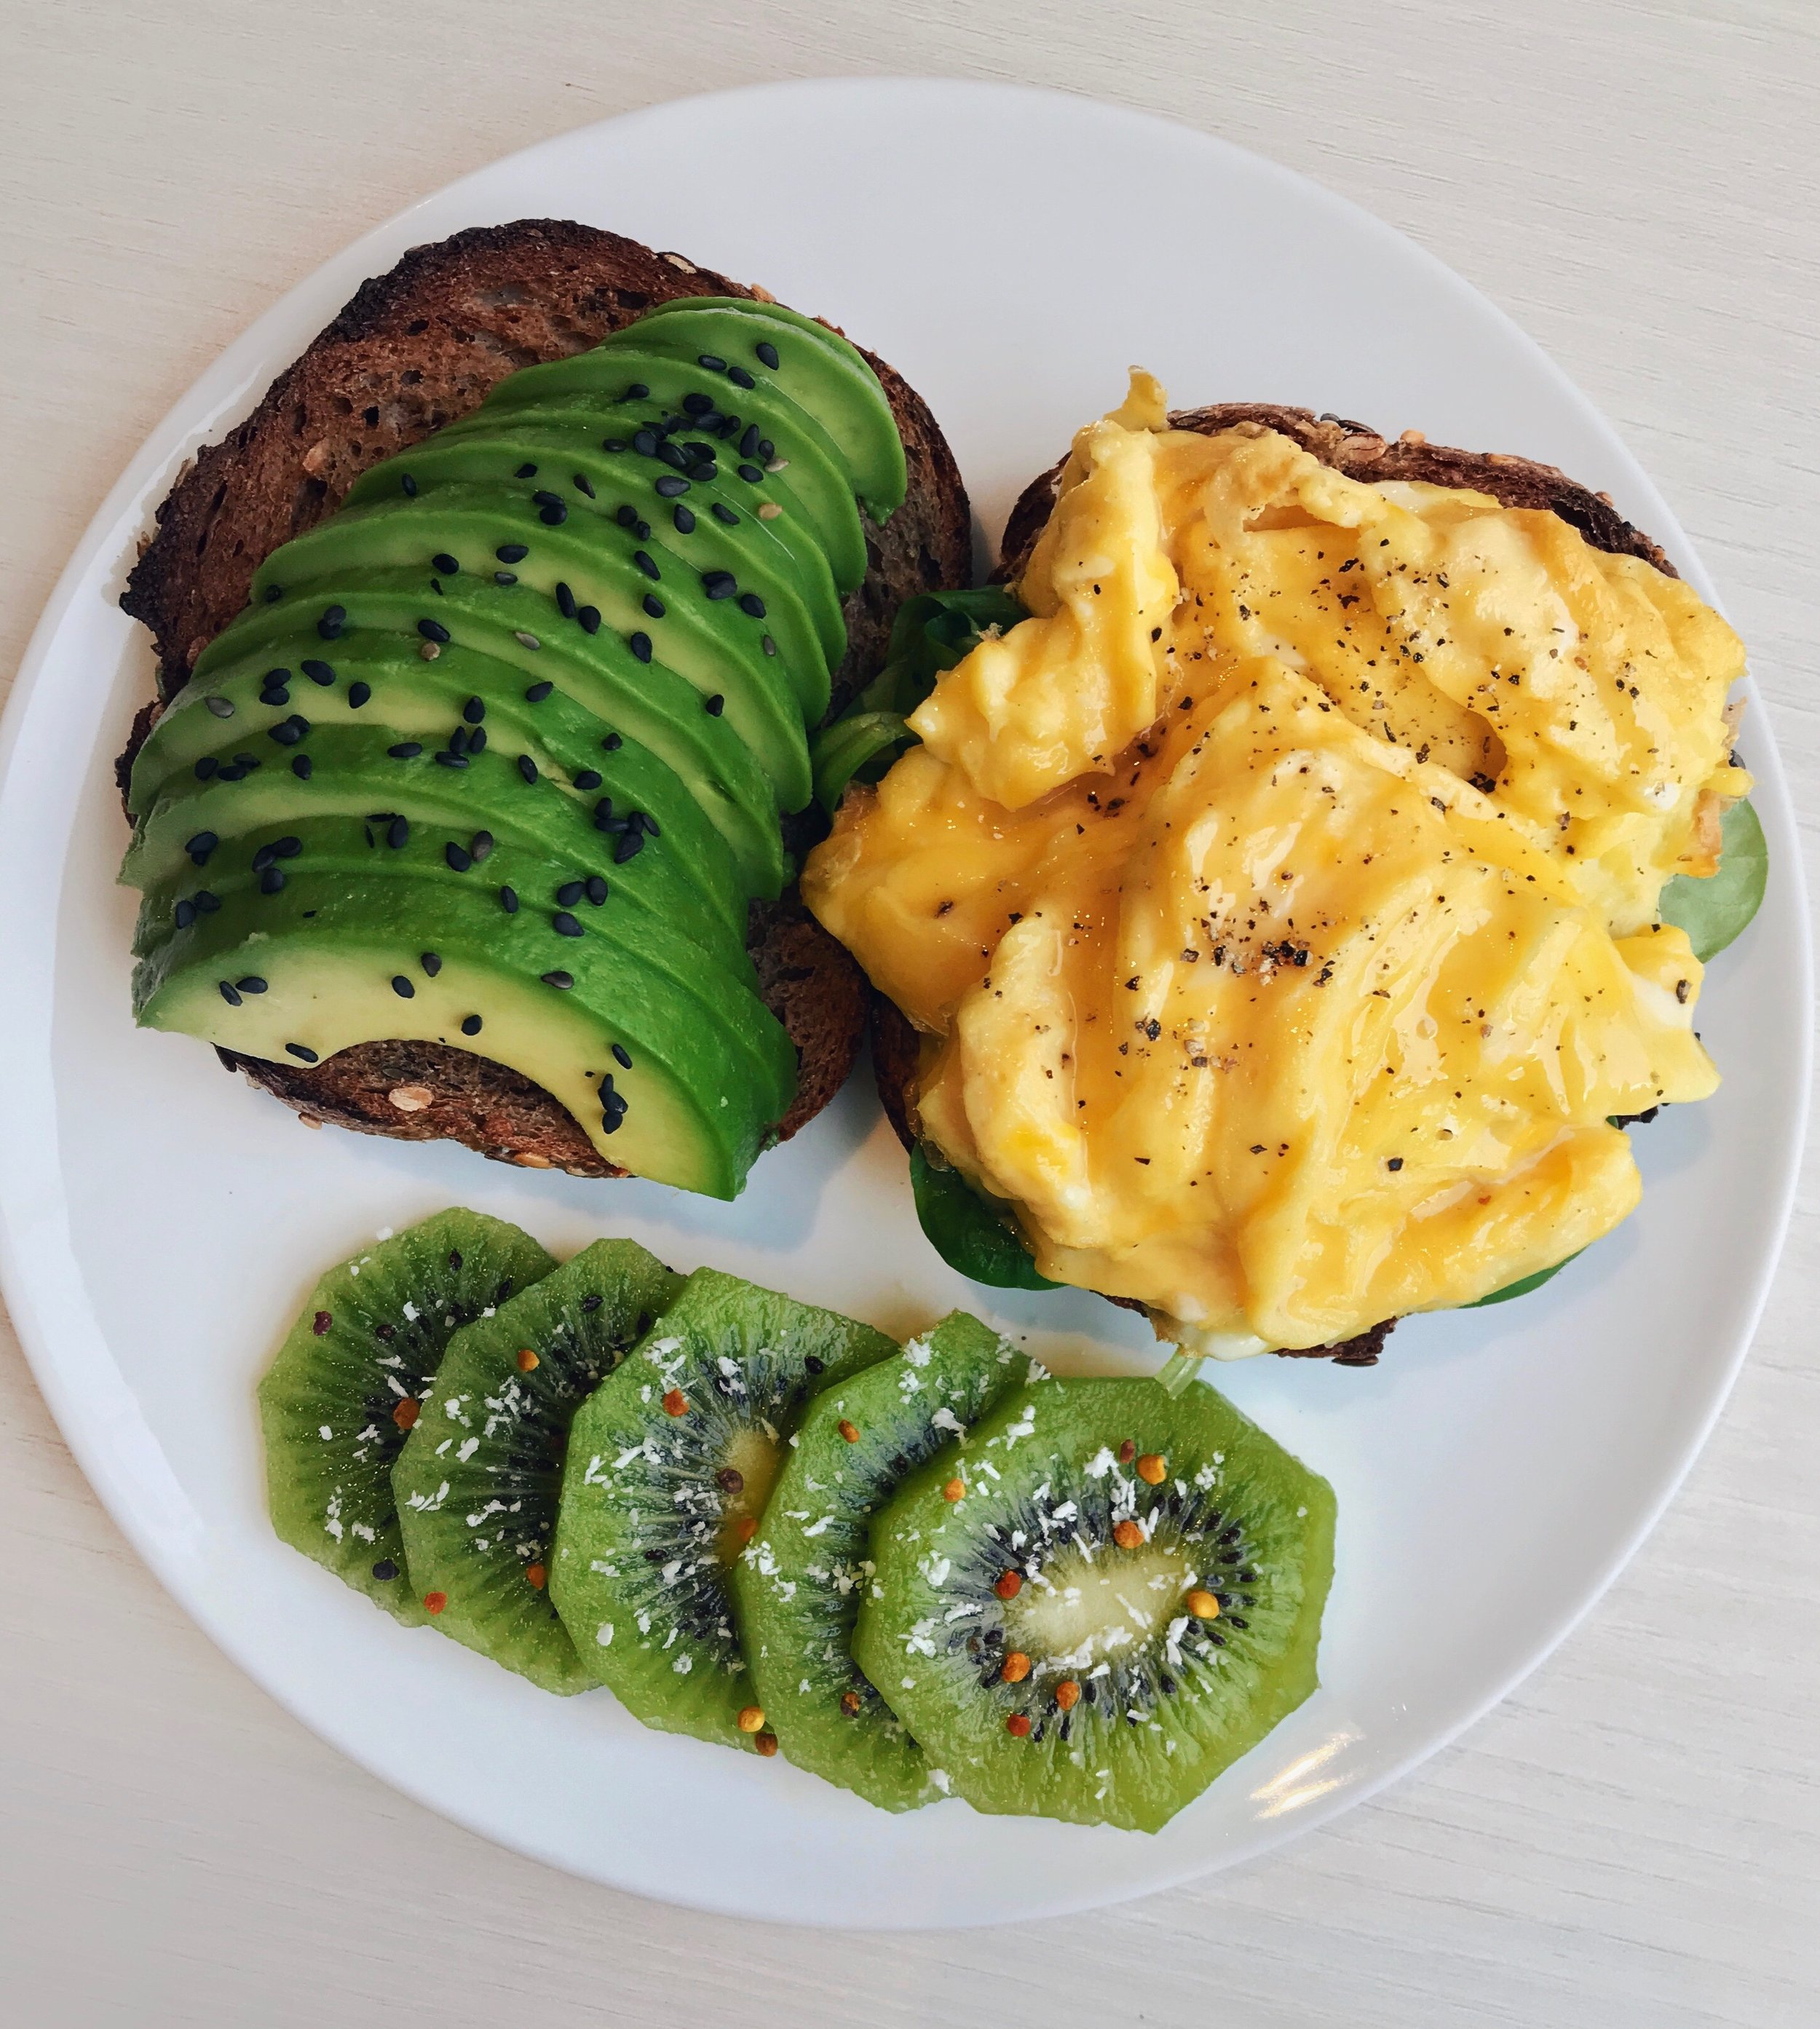 Avocado & Scrambled Eggs Toasts - On my Instagram account, I often got asked how to get fluffy scrambled eggs... There's absolutely nothing to add (no milk, cream or oil is needed)but just make sure you cook them according to the directions below.Tutorial: I first beat the eggs in a bowl with cracked black pepper until foamy, then I pour the preparation into a pan with olive/coconut oil on medium heat. I leave the eggs for about 10/15s without touching, then with a spatula I bring the batter to the center of the pan. I do this on repeat (leaving 5/10s each time) until the eggs are fully cooked. It's easy but the key is just not to over mix the preparation once in the pan.Hope this helps!